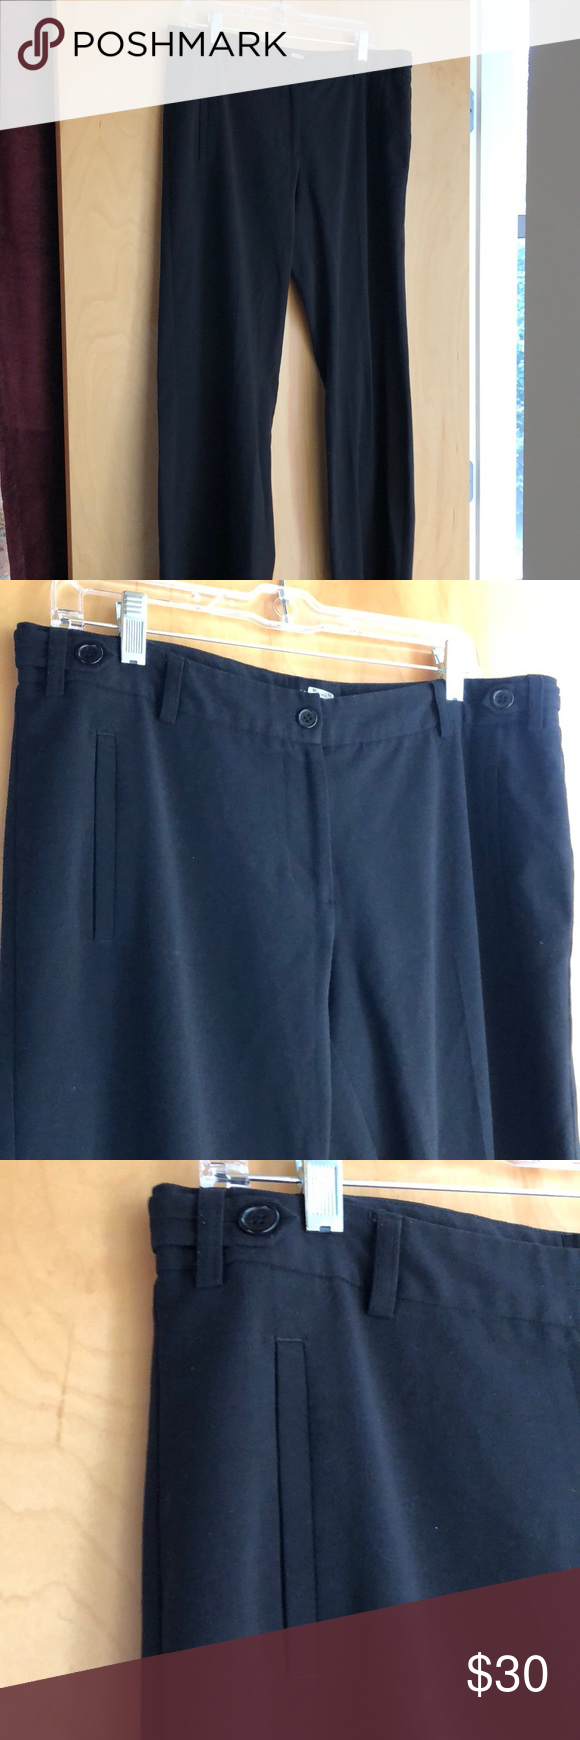 The limited brand cassidystyle black pants in my posh picks